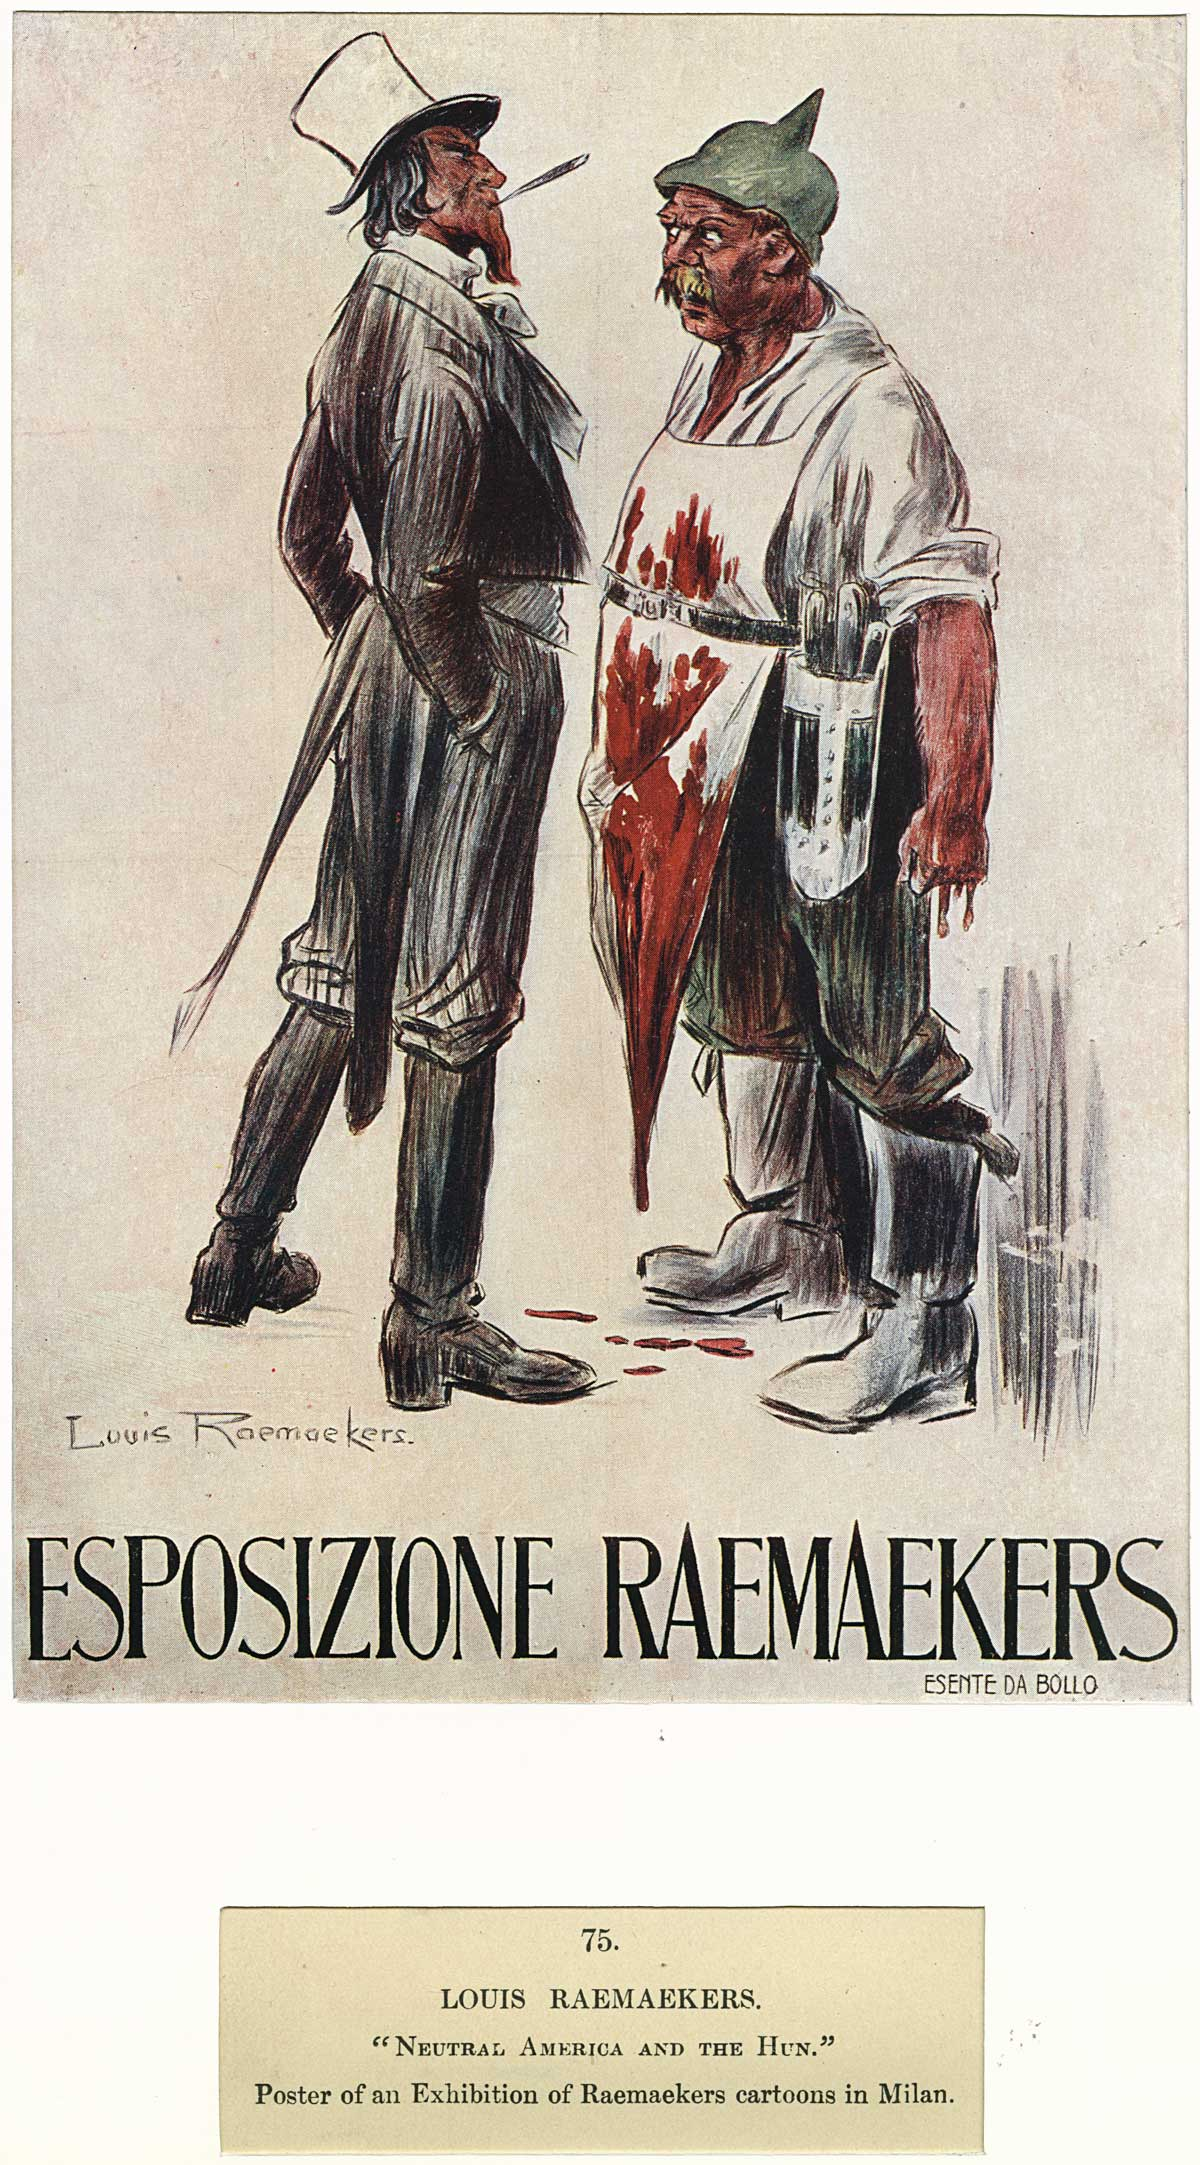 1000+ images about Propaganda Posters on Pinterest